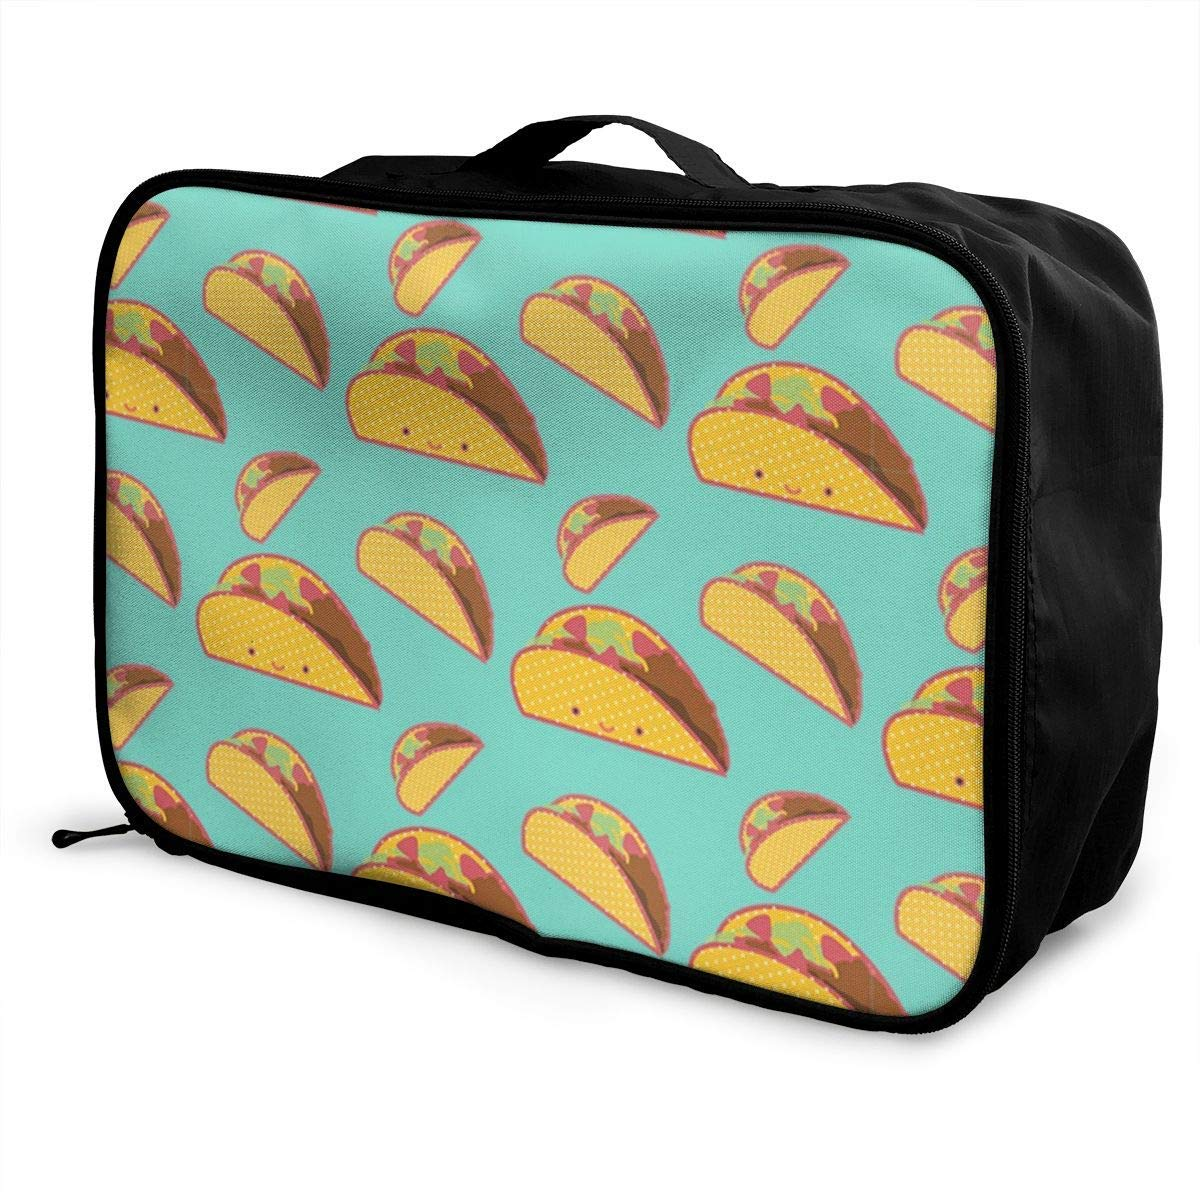 Smile Mexican Tacos Vintage JTRVW Luggage Bags for Travel Travel Lightweight Waterproof Foldable Storage Carry Luggage Duffle Tote Bag